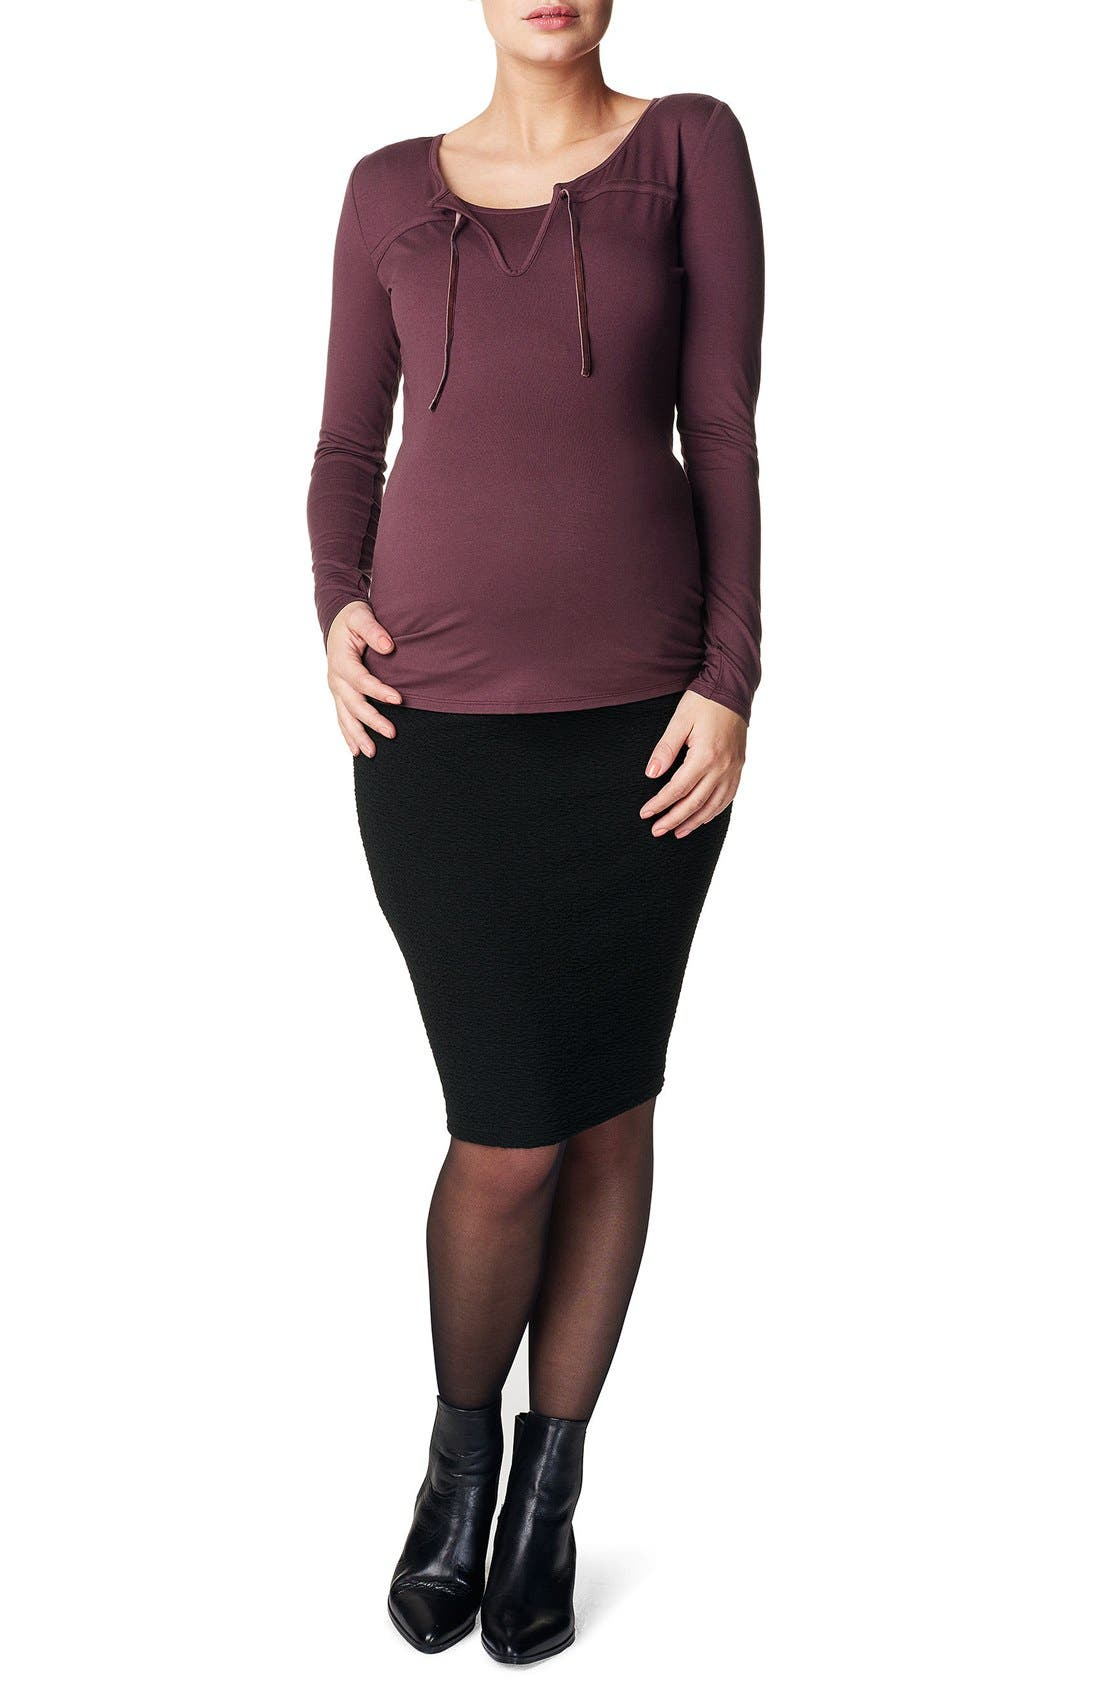 NOPPIES 'Eli' Over the Belly Maternity Skirt